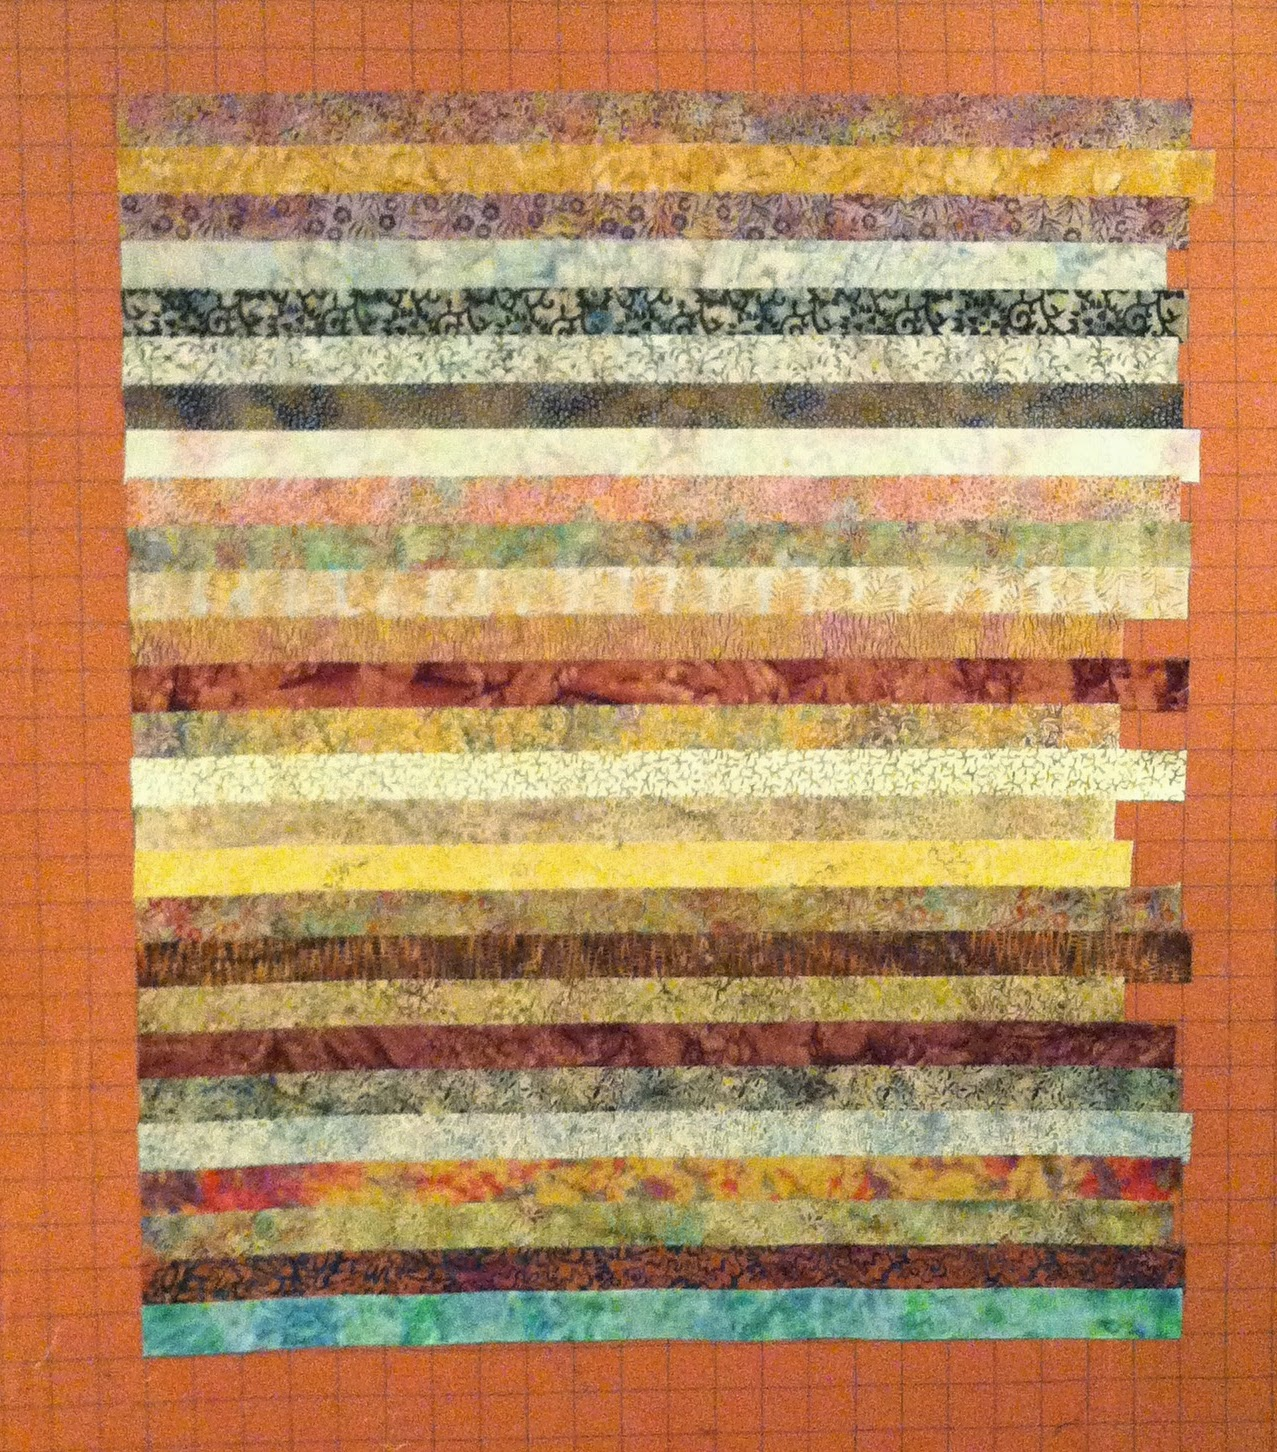 Bali Pops, Jelly Roll, 2.5 Strips, Batik Strips